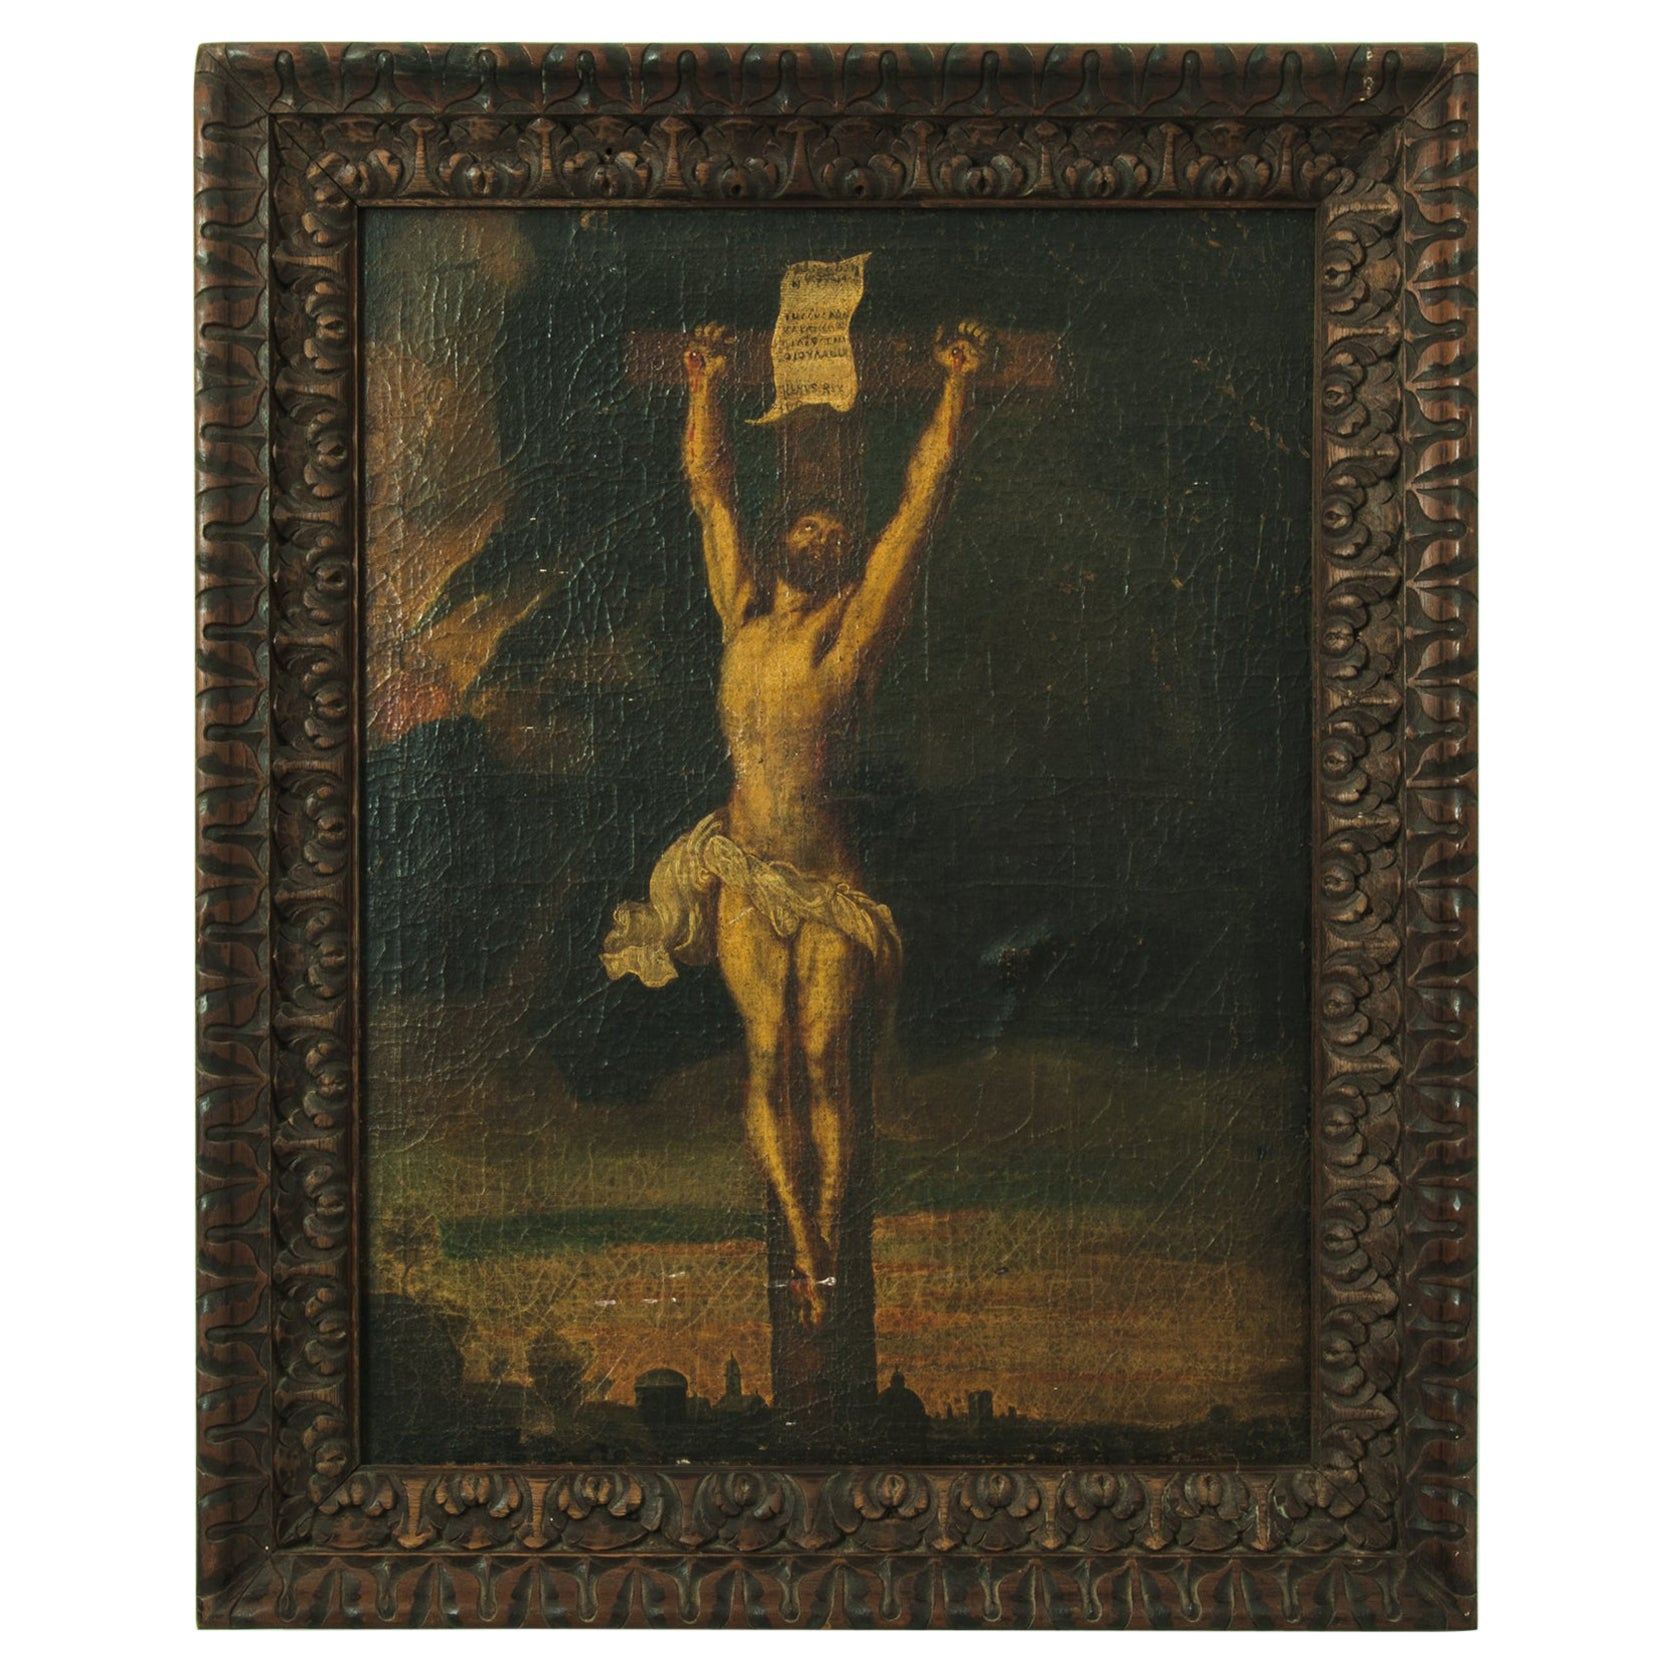 19th Century Belgian Devotional Painting in Wooden Frame